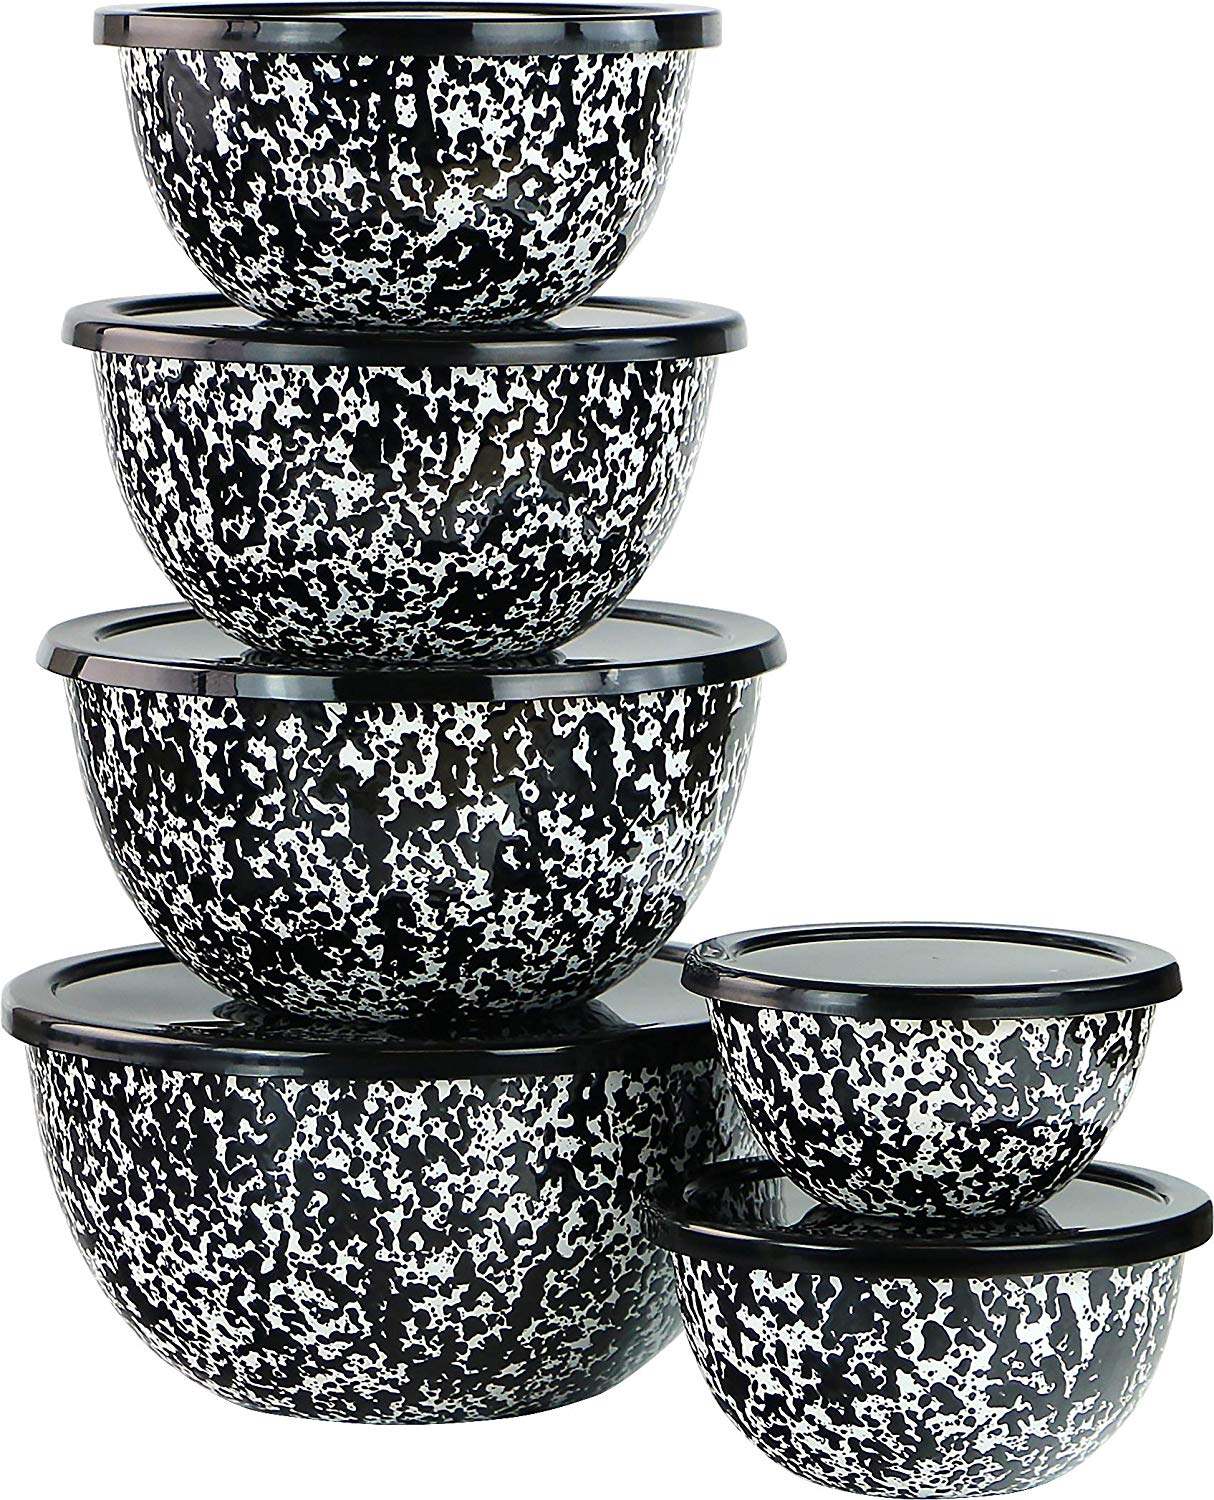 Reston Lloyd 44810 12pc Set Air Tight Lids Food Storage